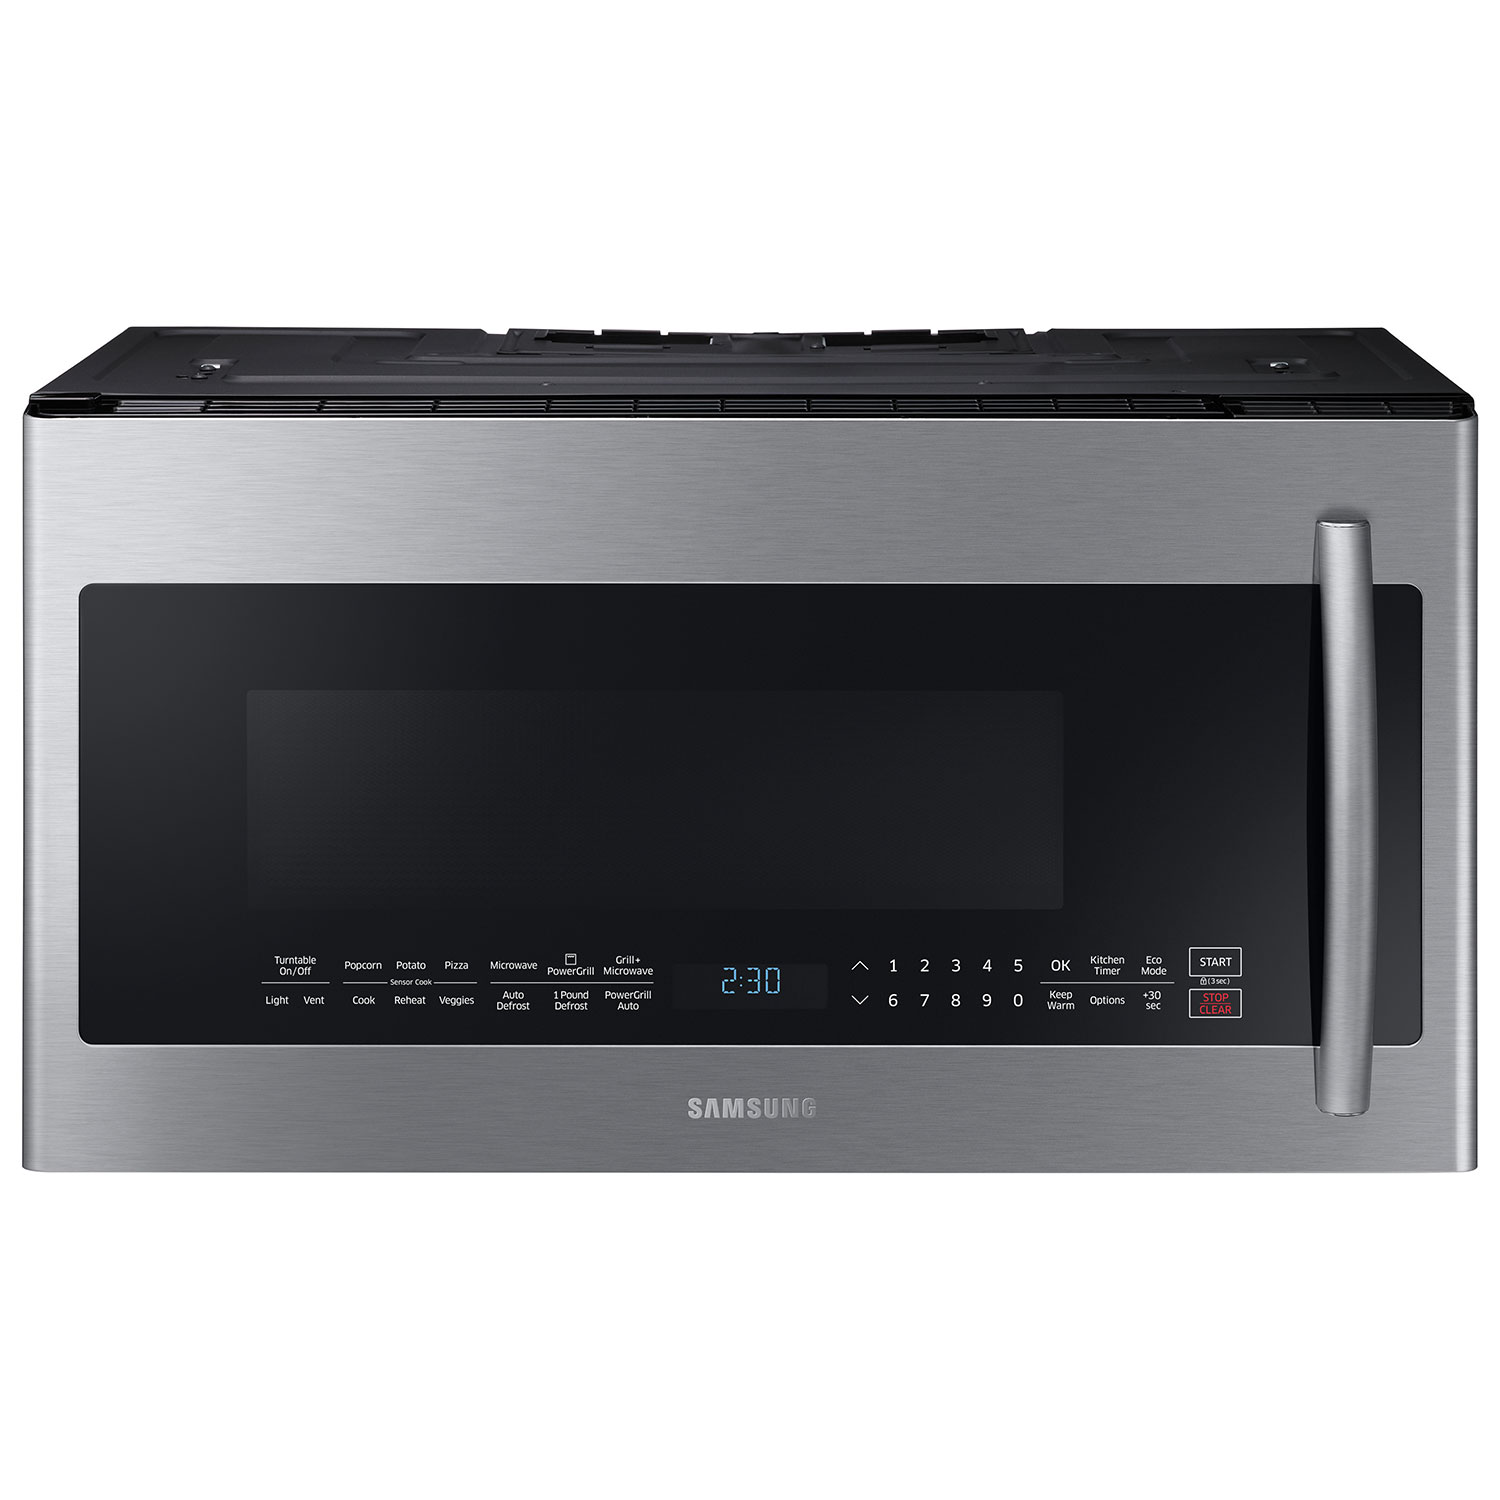 Whirlpool white ice microwave canada - Samsung Powergrill Over The Range Microwave 2 1 Cu Ft Stainless Steel